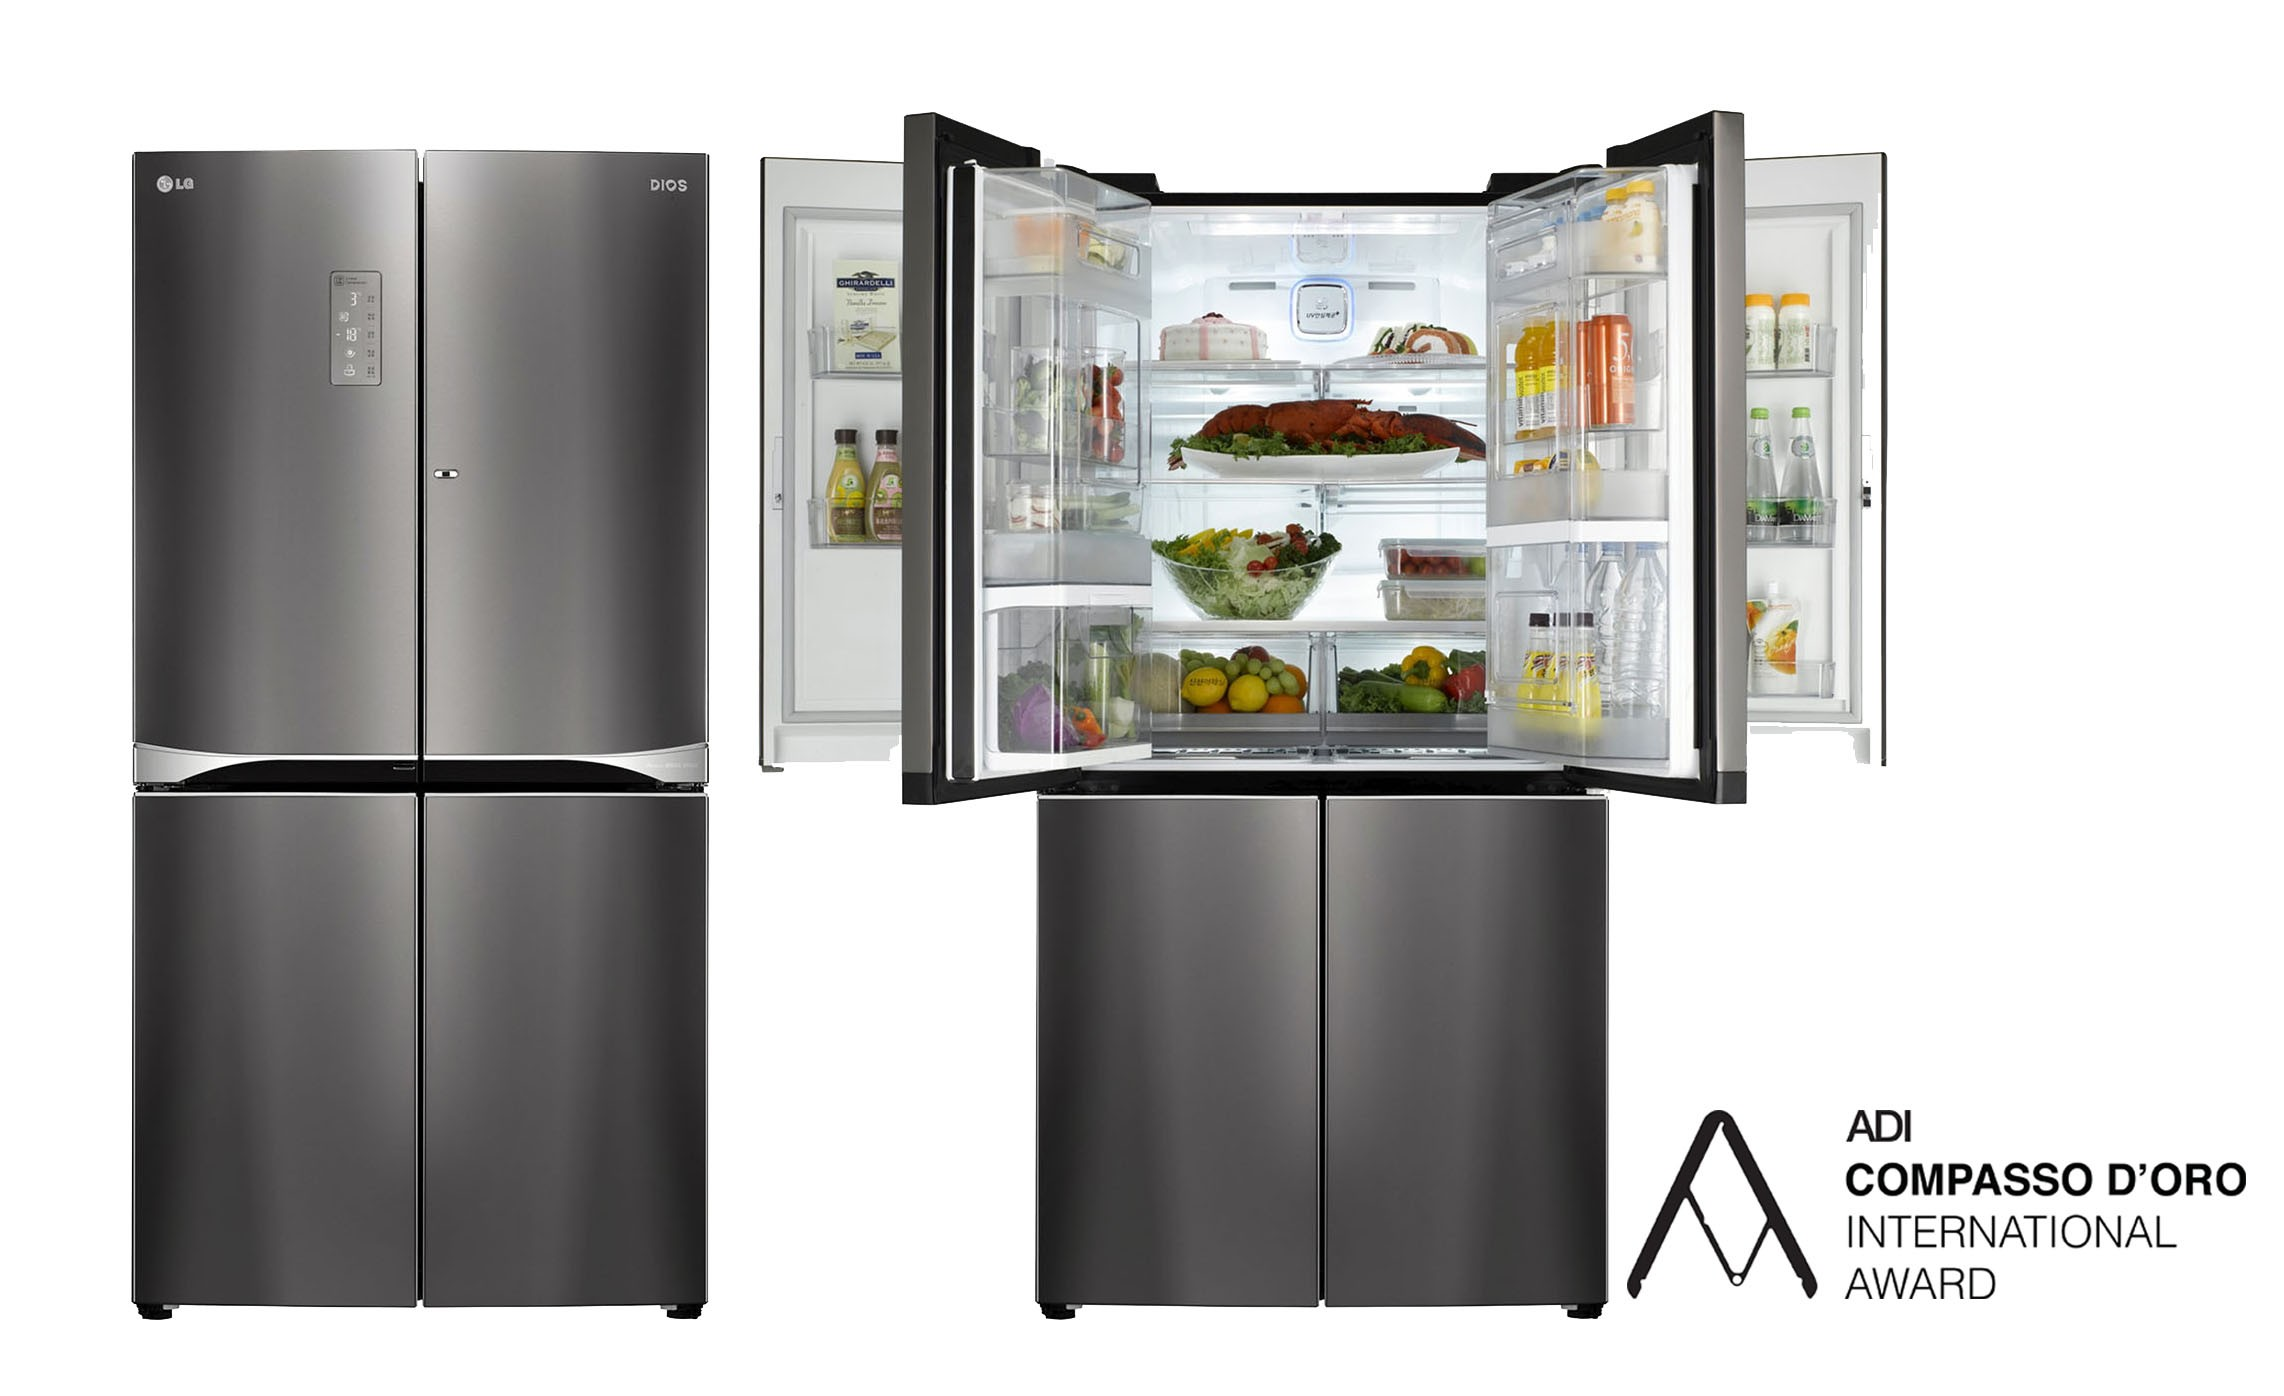 lg wins coveted italian design award for dual door in door refrigerator lg newsroom. Black Bedroom Furniture Sets. Home Design Ideas